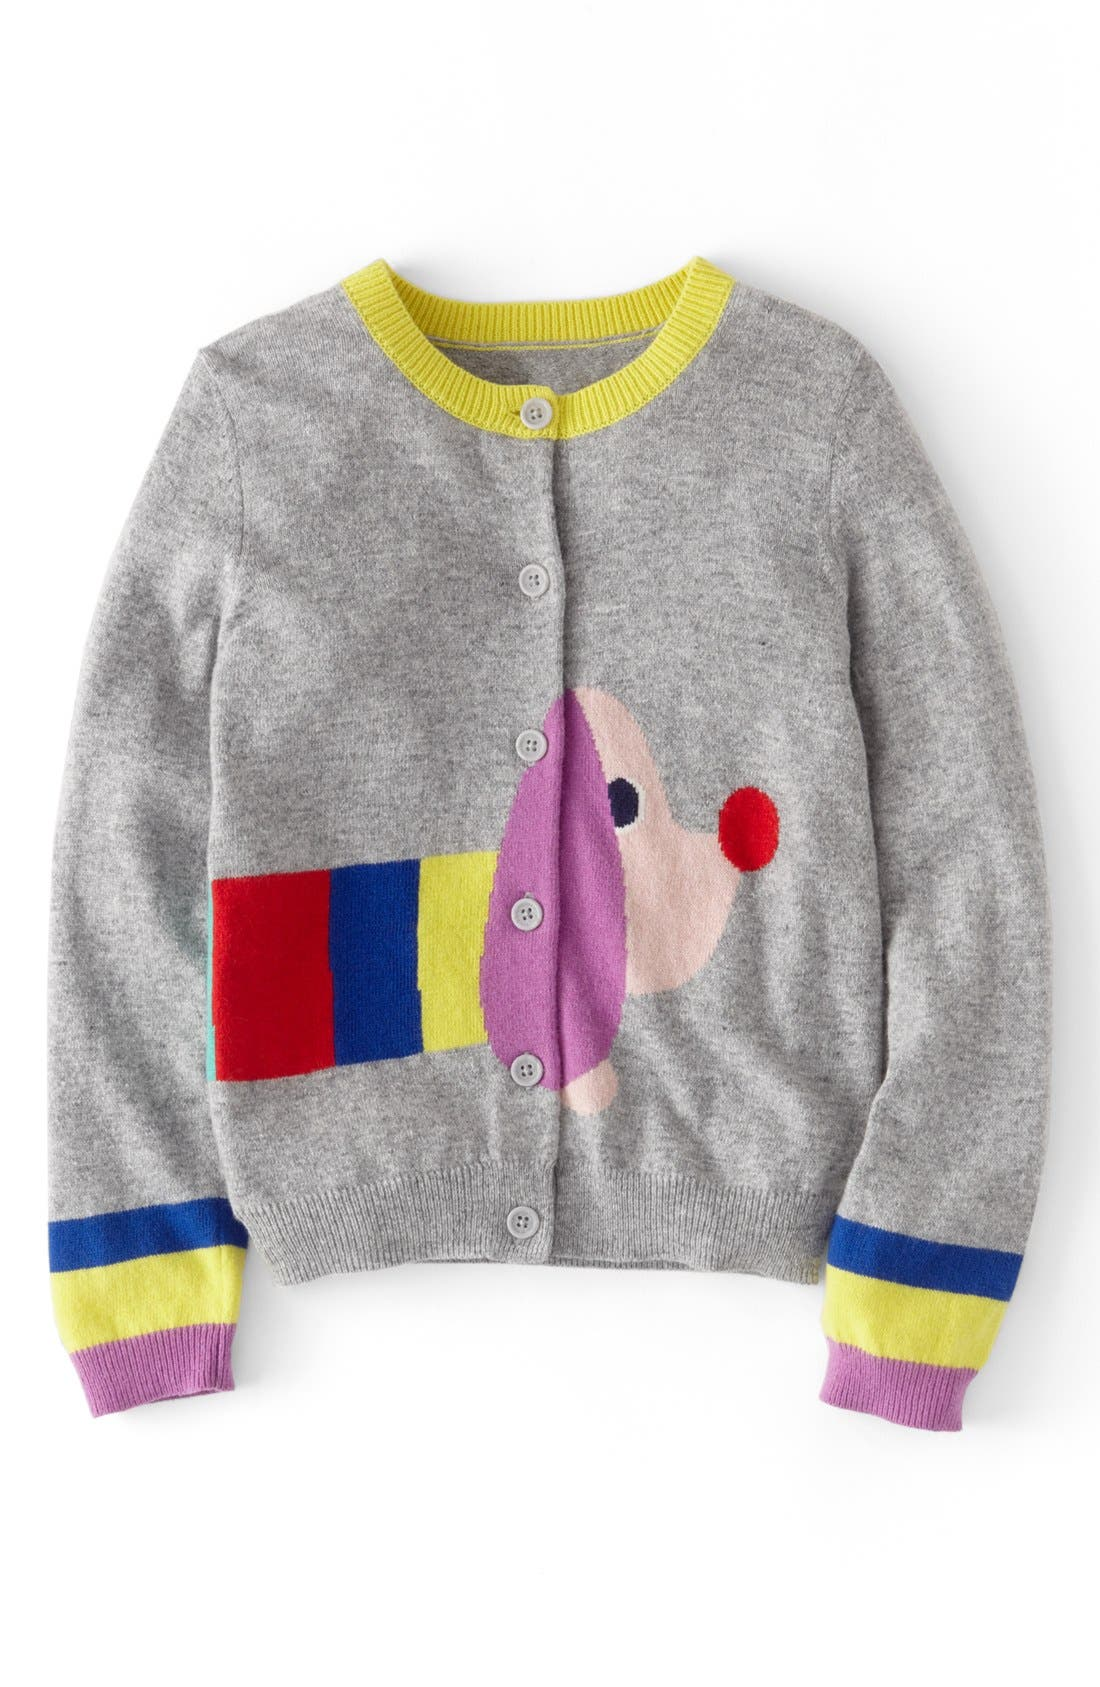 Alternate Image 1 Selected - Mini Boden 'Pet' Cardigan (Toddler Girls, Little Girls & Big Girls)